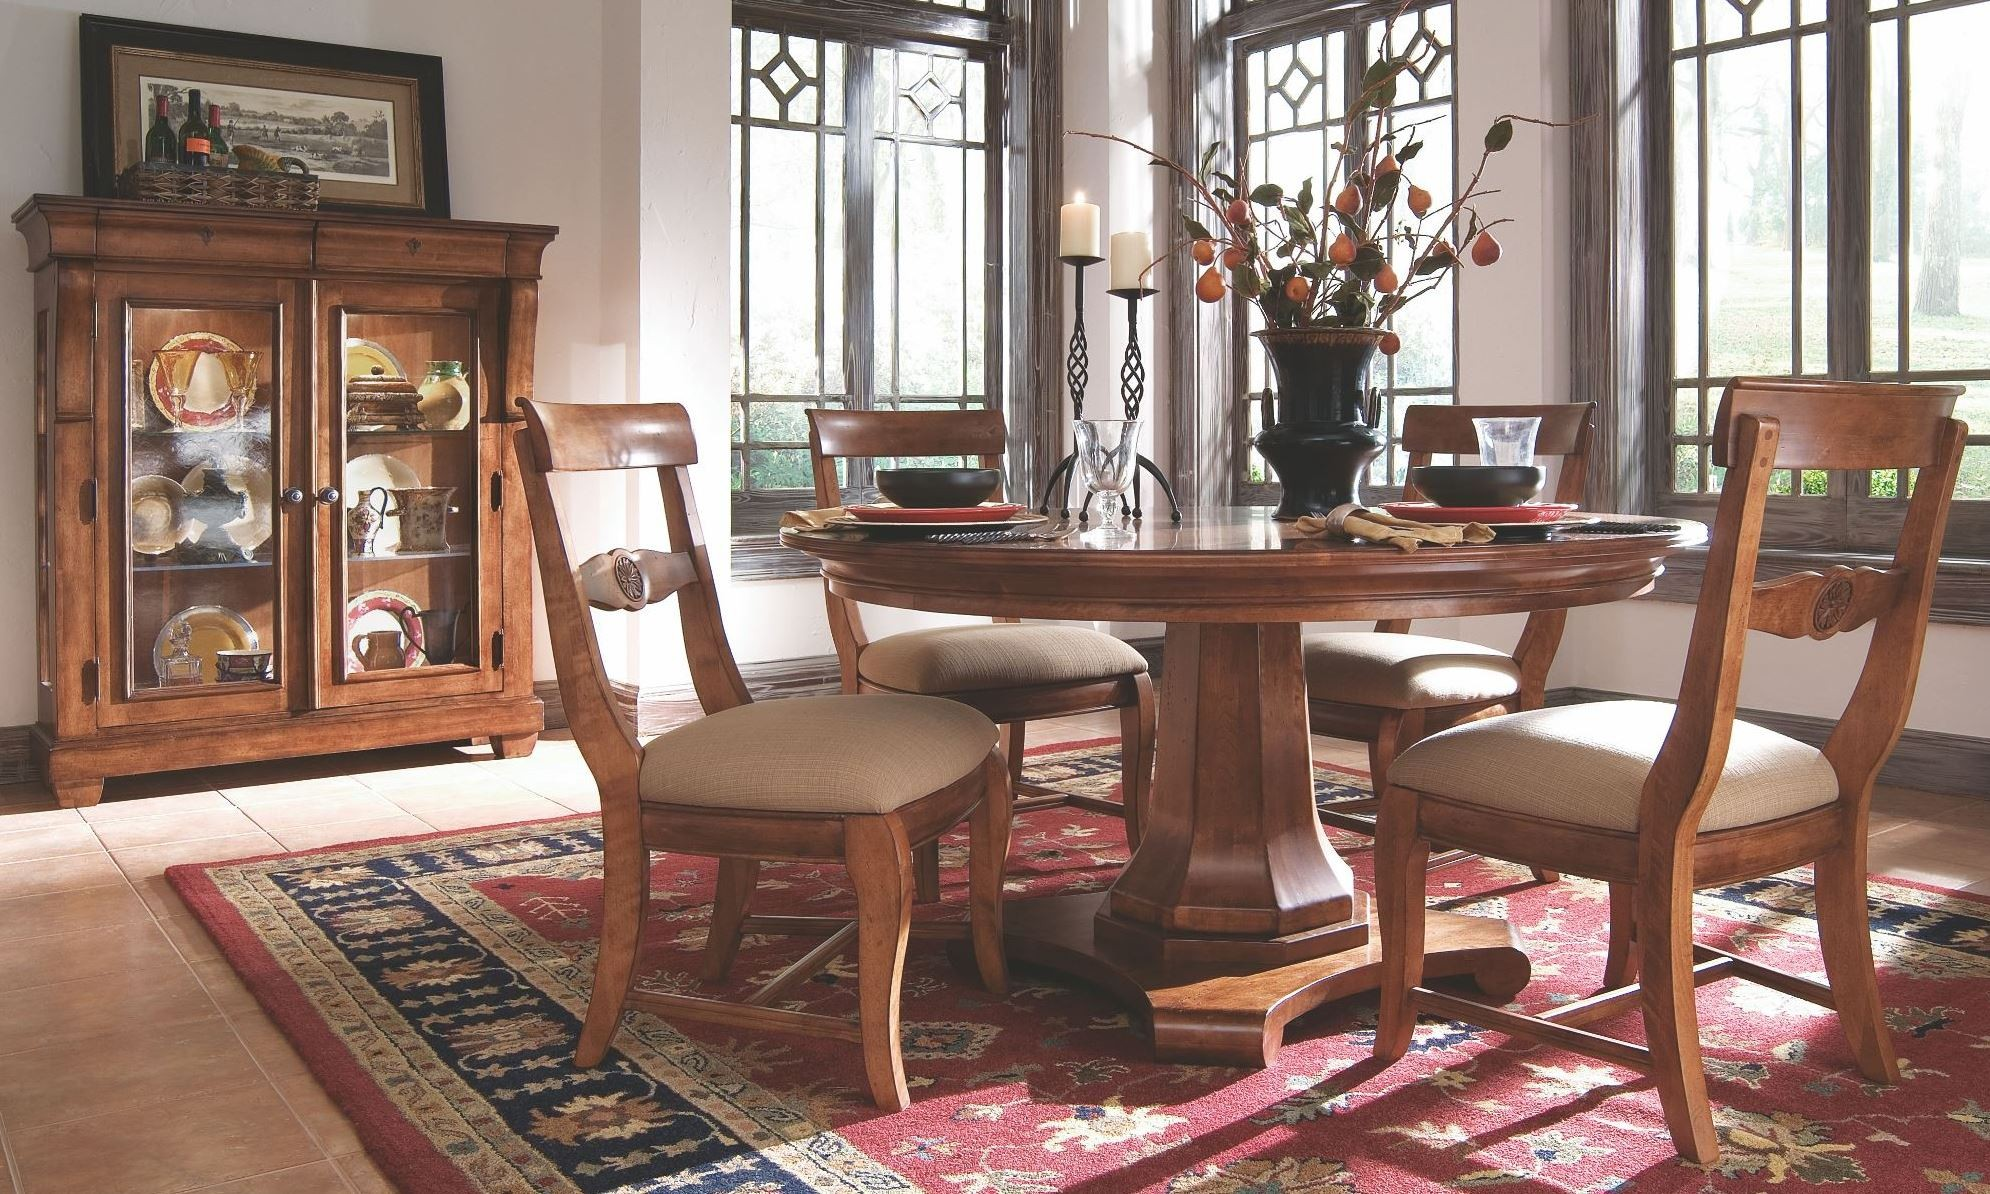 tuscano round pedestal dining room set from kincaid 96 kincaid furniture tuscano dining room collection